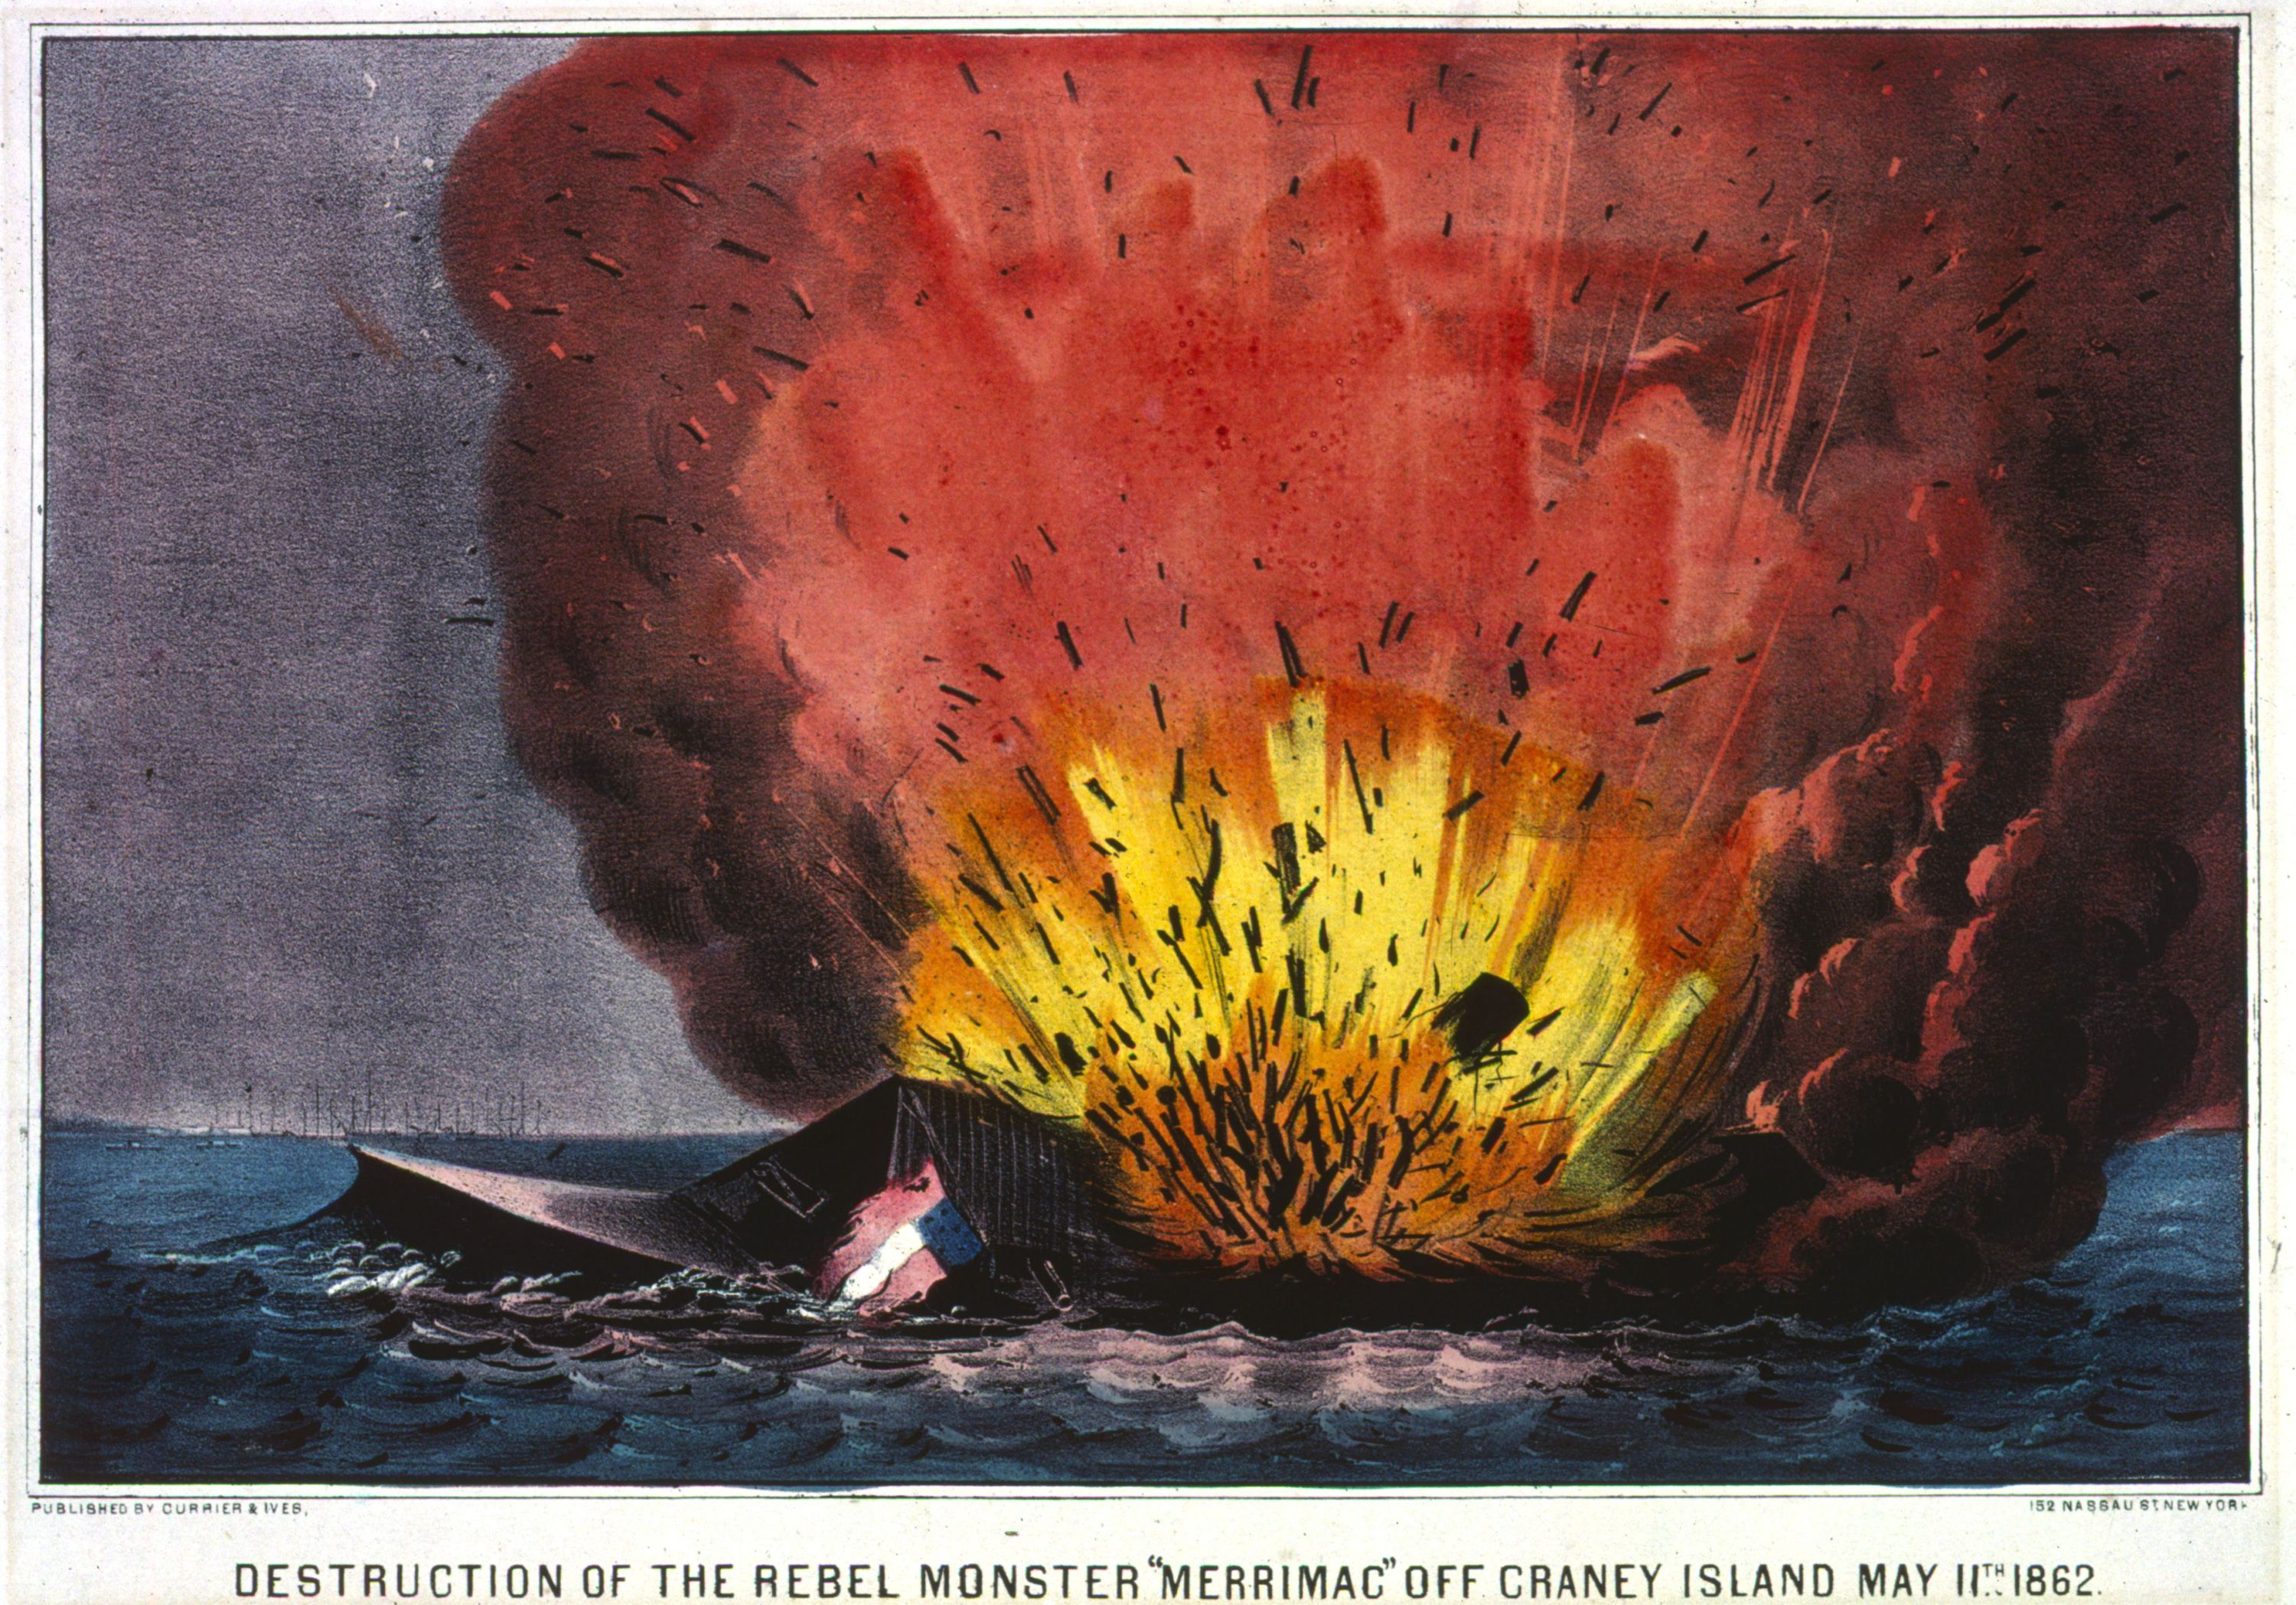 Lithograph showing the destruction of the C.S.S. Virginia.